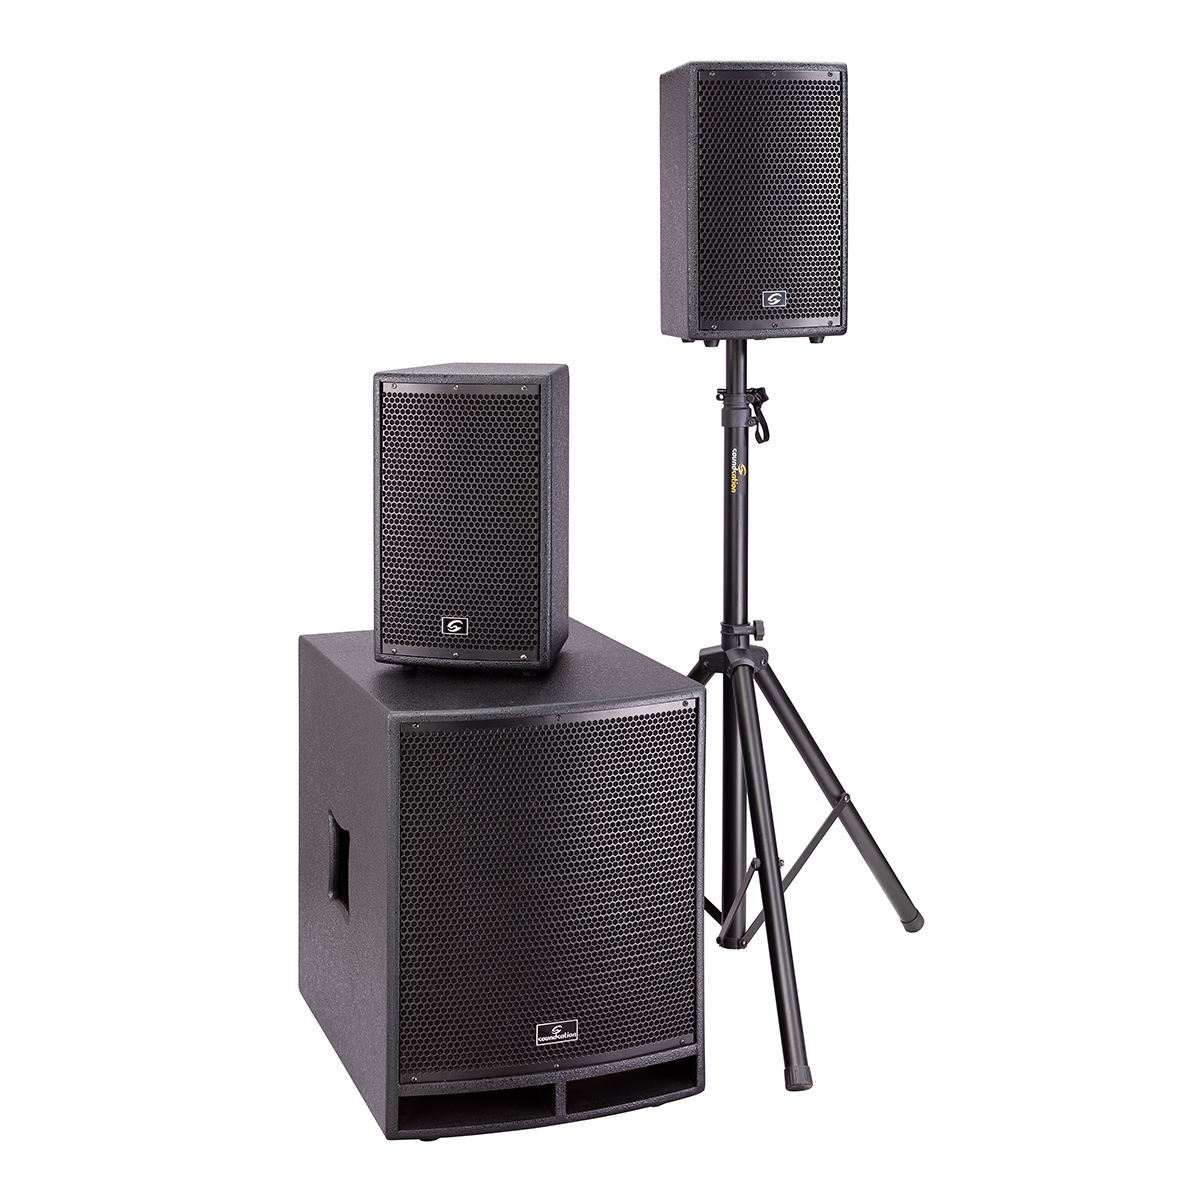 SISTEMA PA 2.1 SOUNDSATION LIVEMAKER 1521 MIX. 2x8